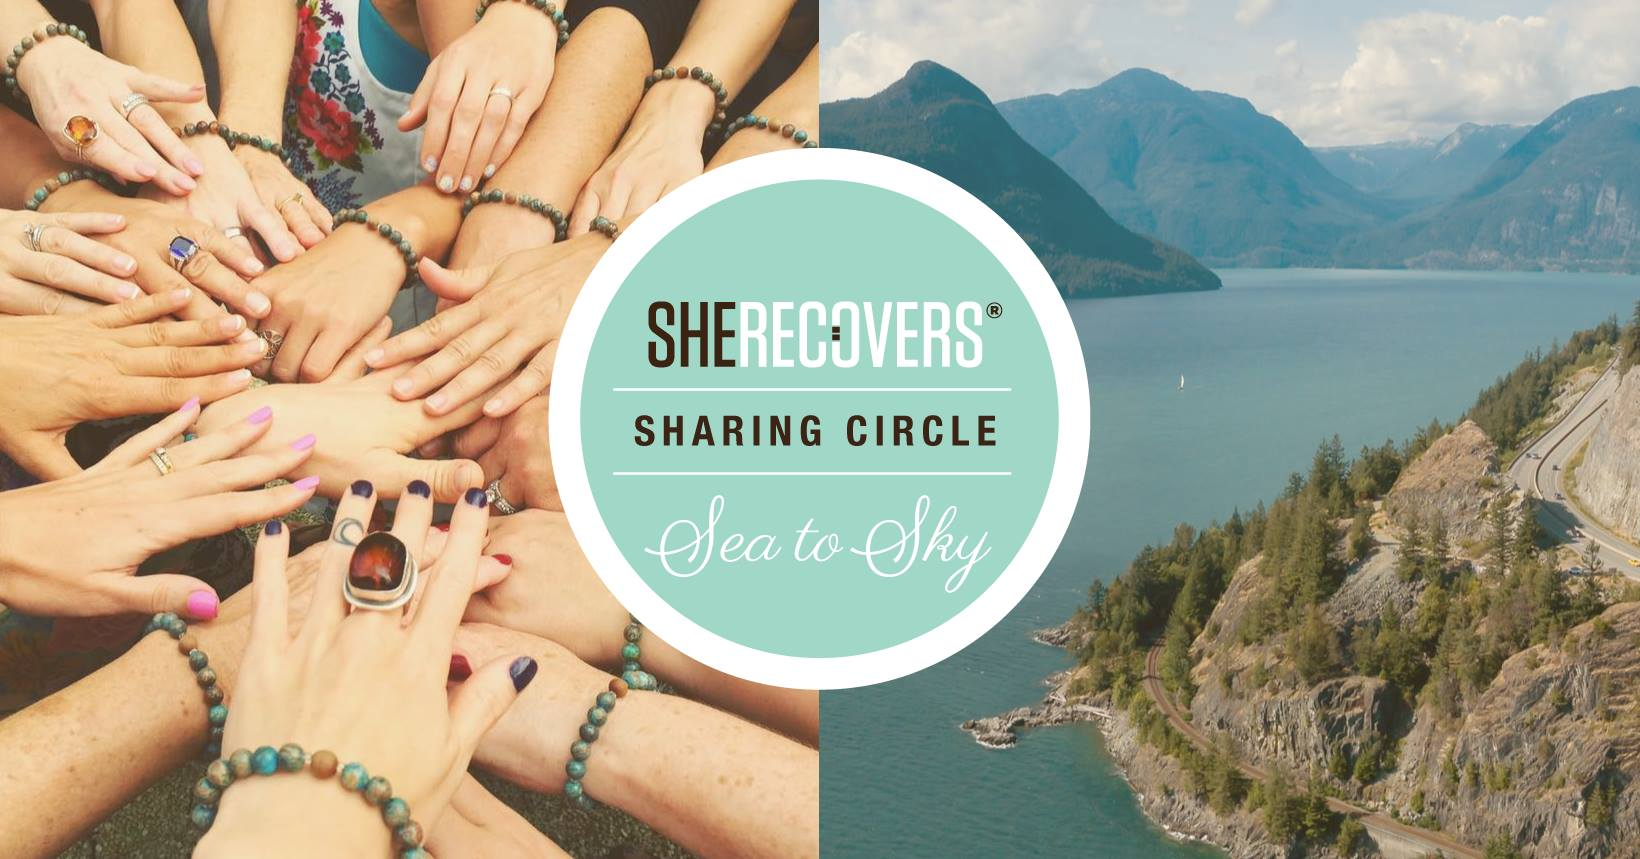 You're invited! - SHE RECOVERS® Sharing Circle Sea to Sky Groups meet monthly on the North Shore & White Rock.To join us please visit SHE RECOVERS® Sharing Circle Sea to Sky (closed Facebook group) or contact Kim@seatoskycoaching.com.Click EVENTS for upcoming sharing circle dates.Pre-register on Eventbrite HERE